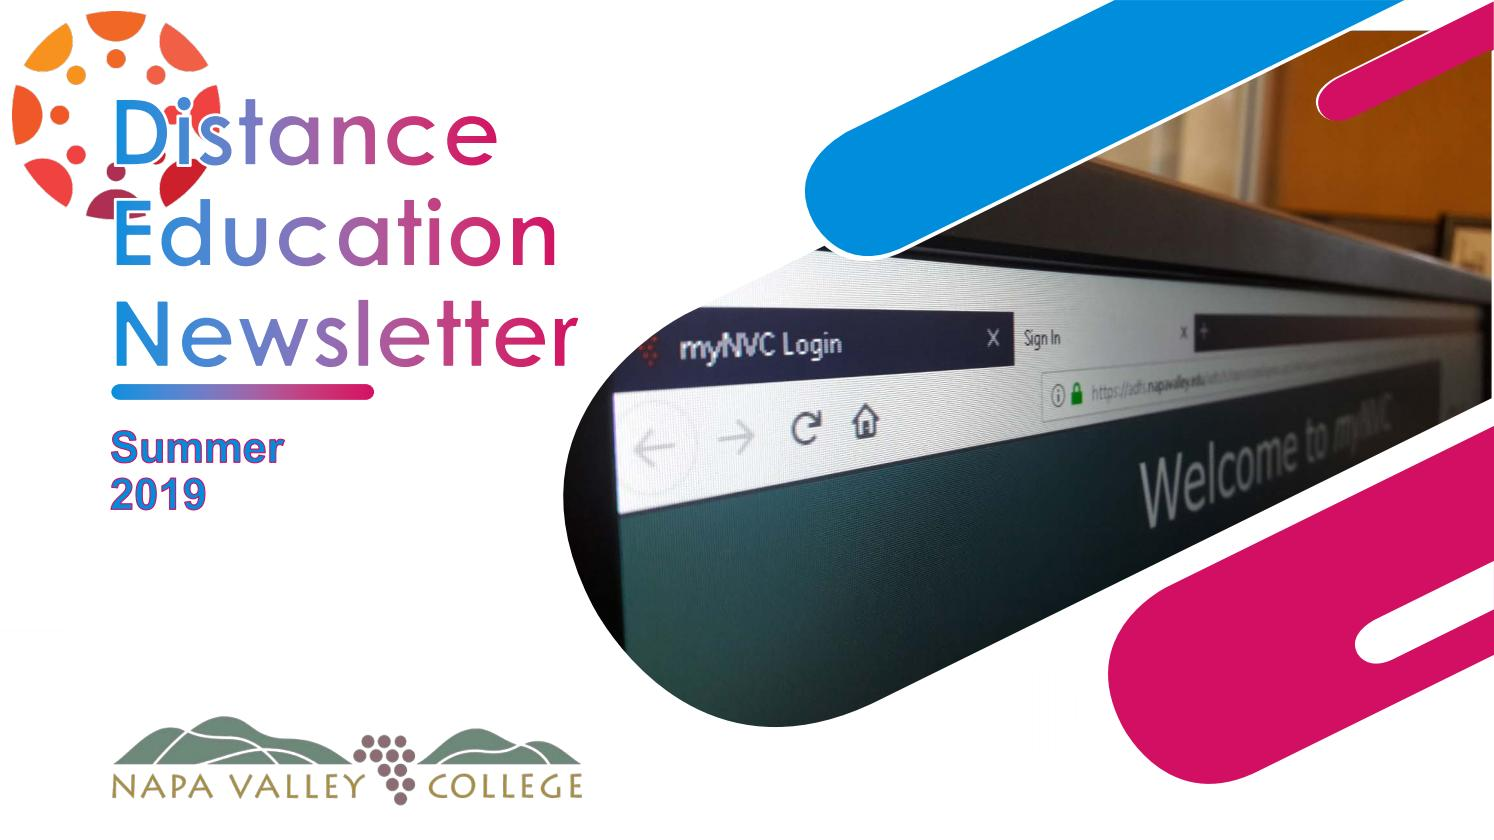 Summer Newsletter 2019 by NapaValleyCollege - issuu